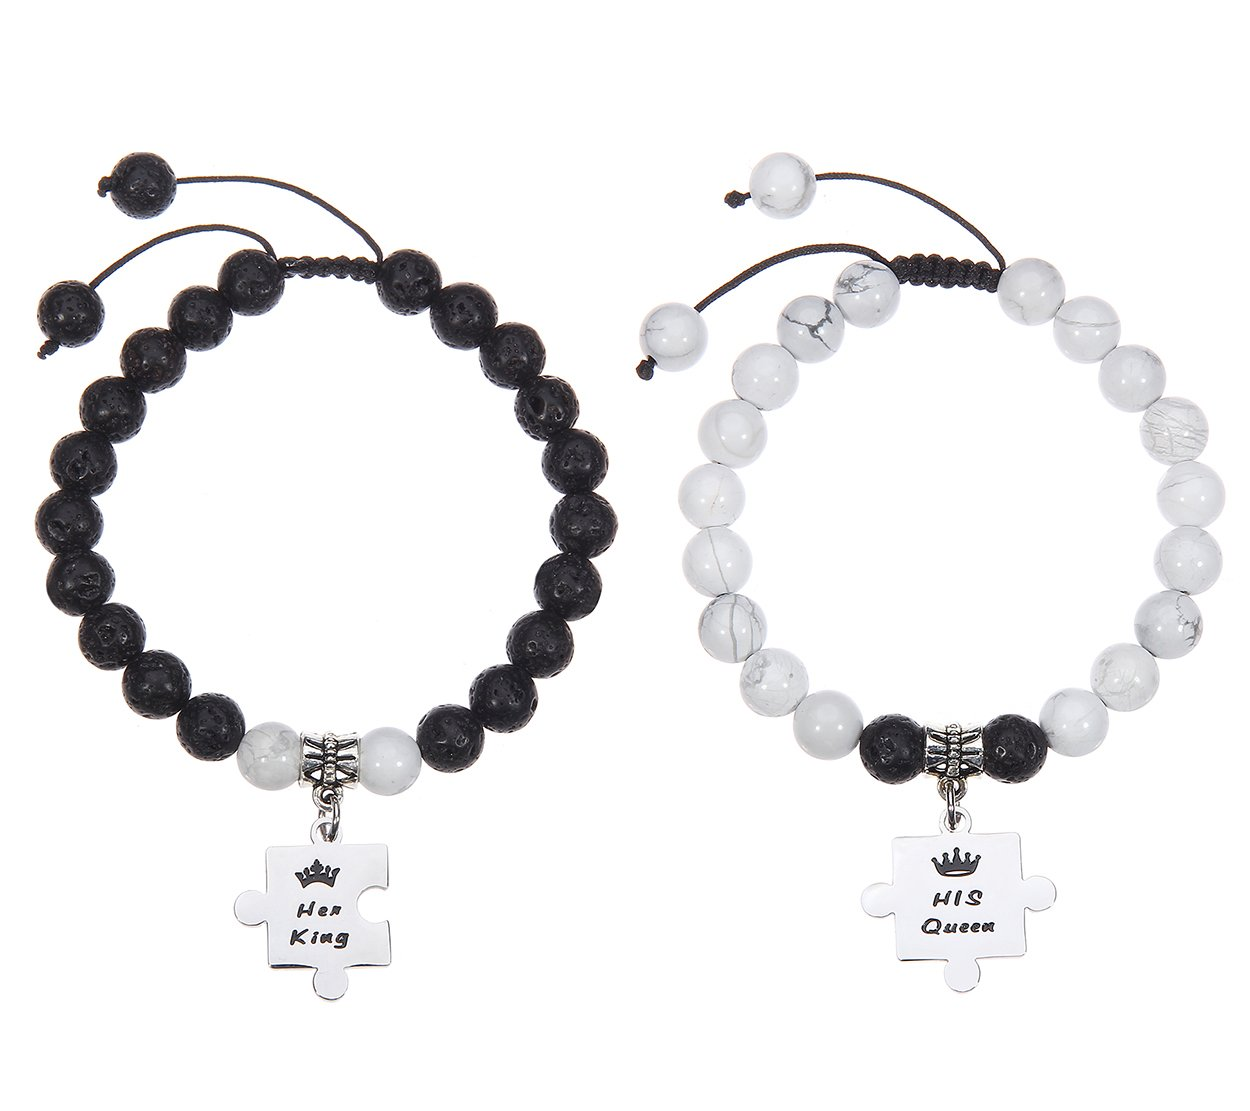 Kingmaruo King Queen Matching Couples Set 8mm Lava Rock & White Howlite Beads Adjustable Bracelet His Hers Jewelry